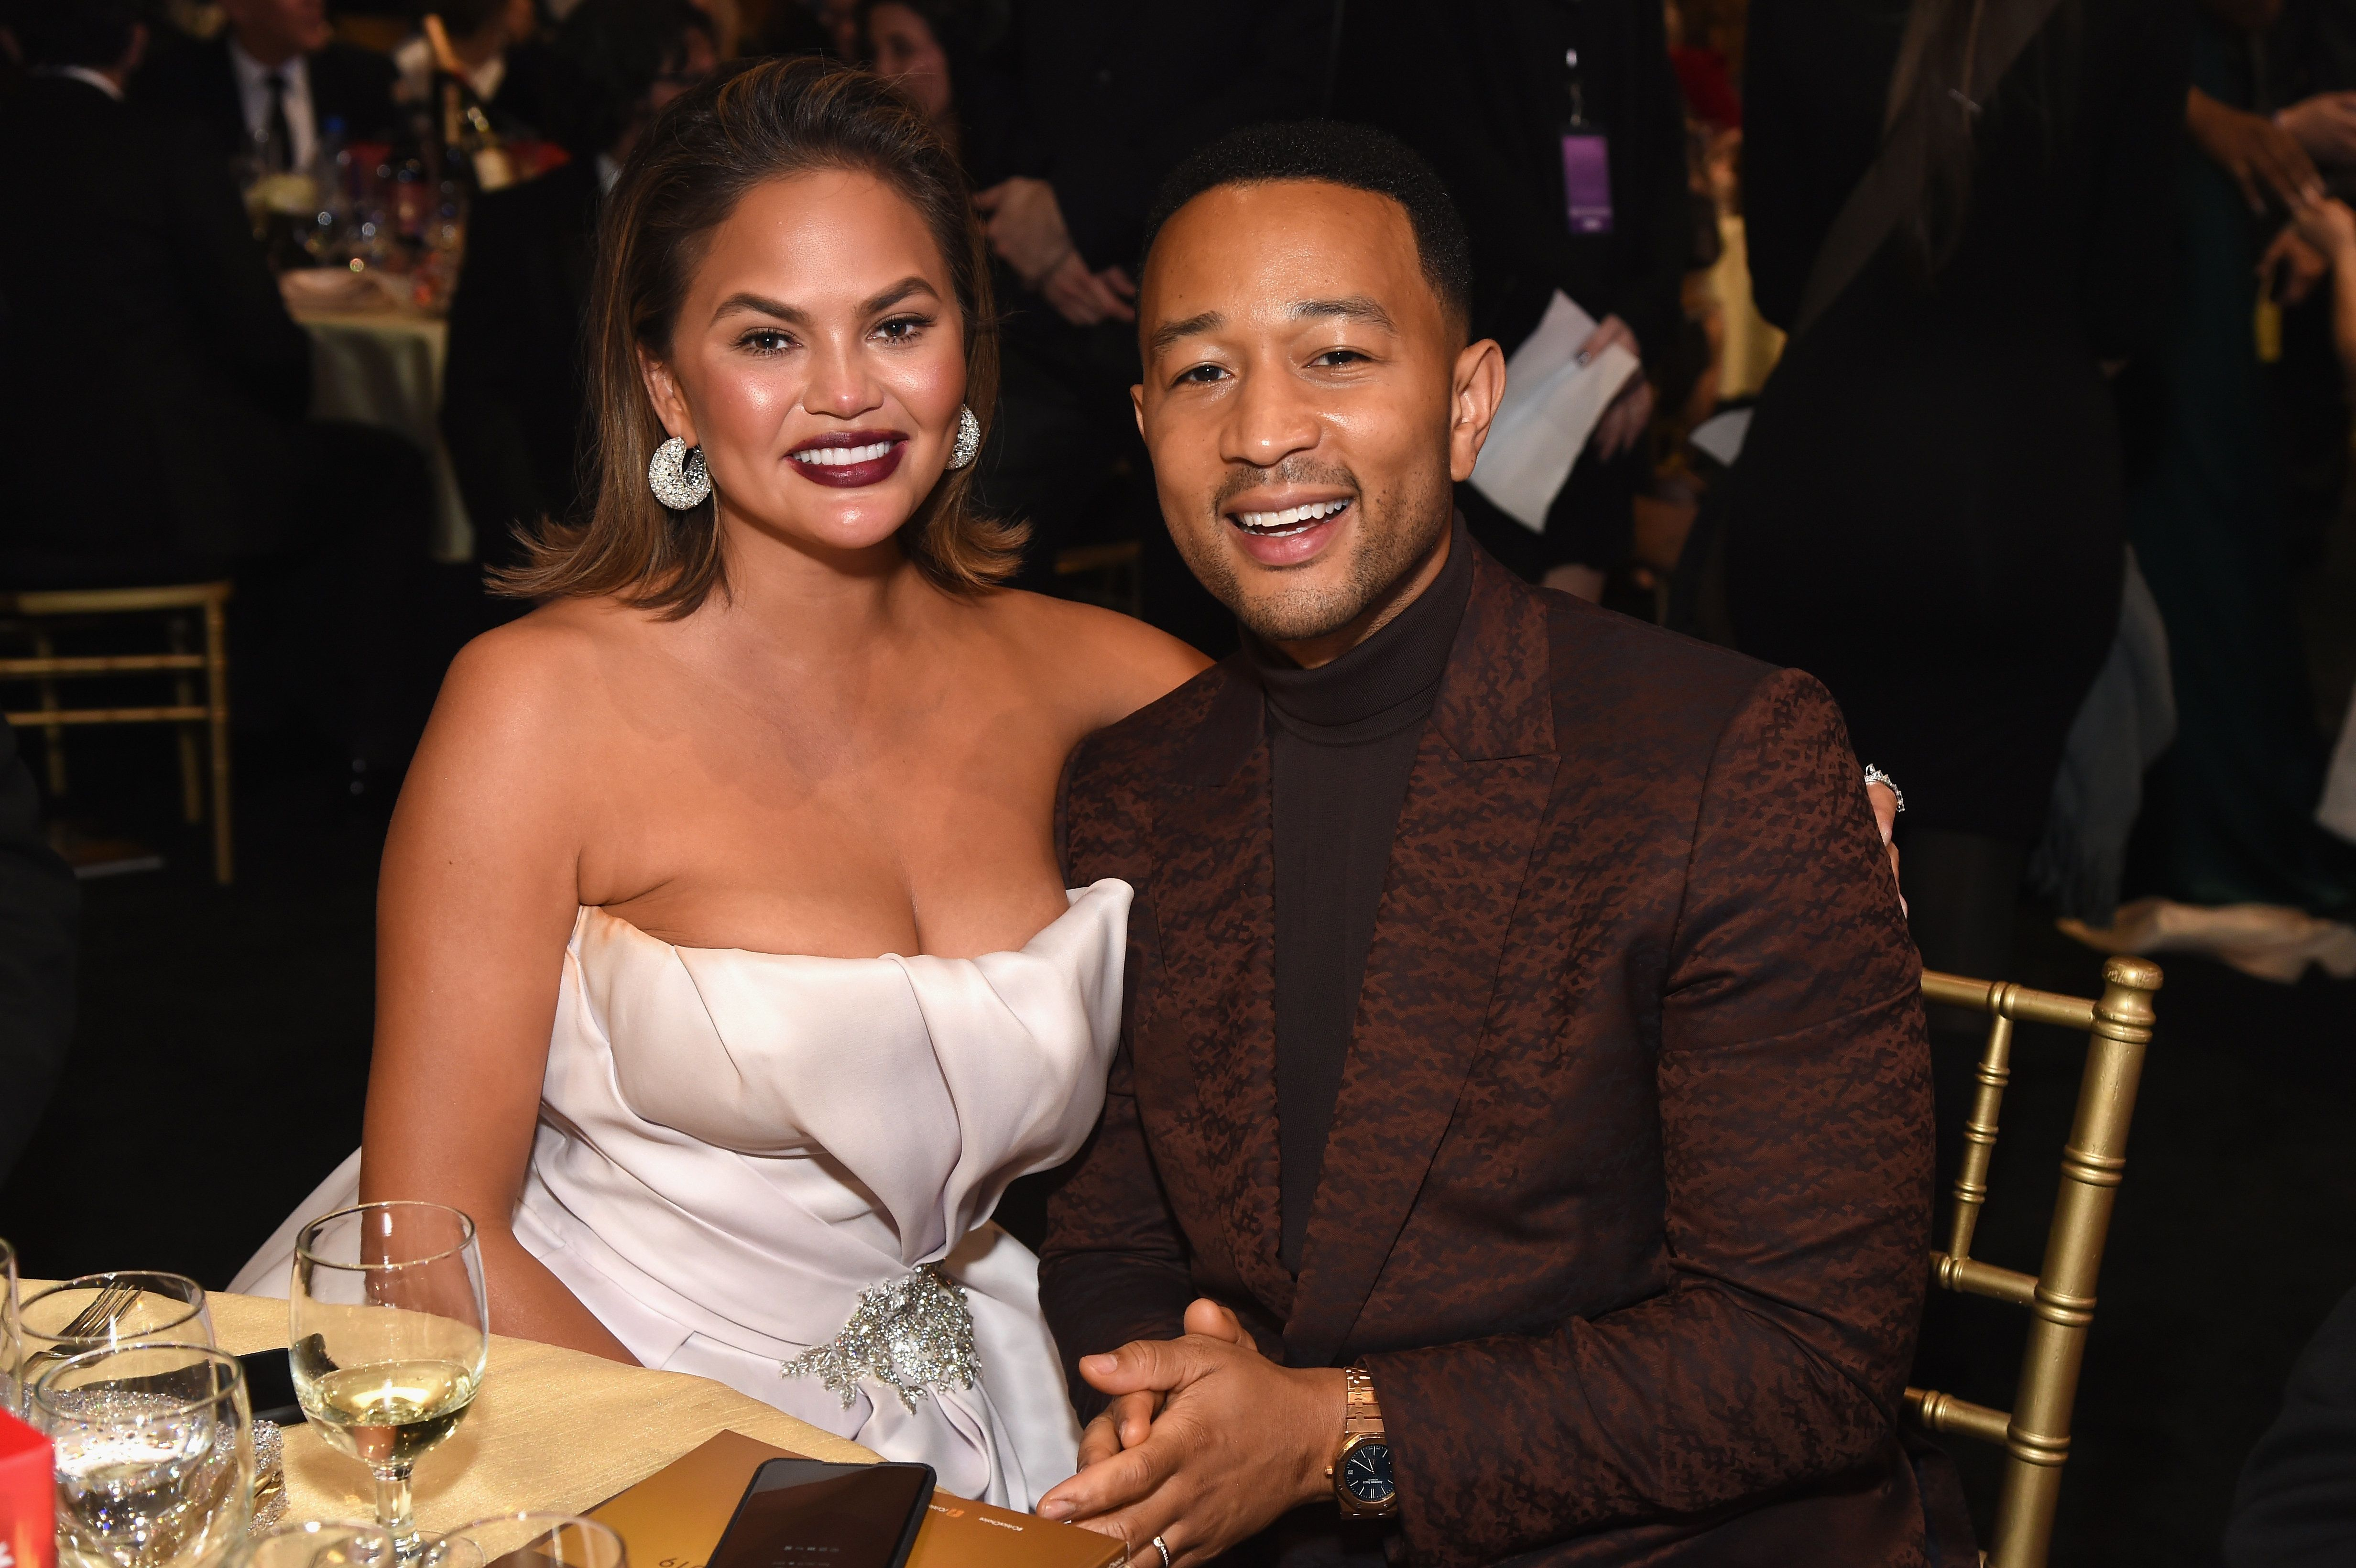 Chrissy Teigen and John Legend are parents to Luna, 2, and Miles, 8 months this